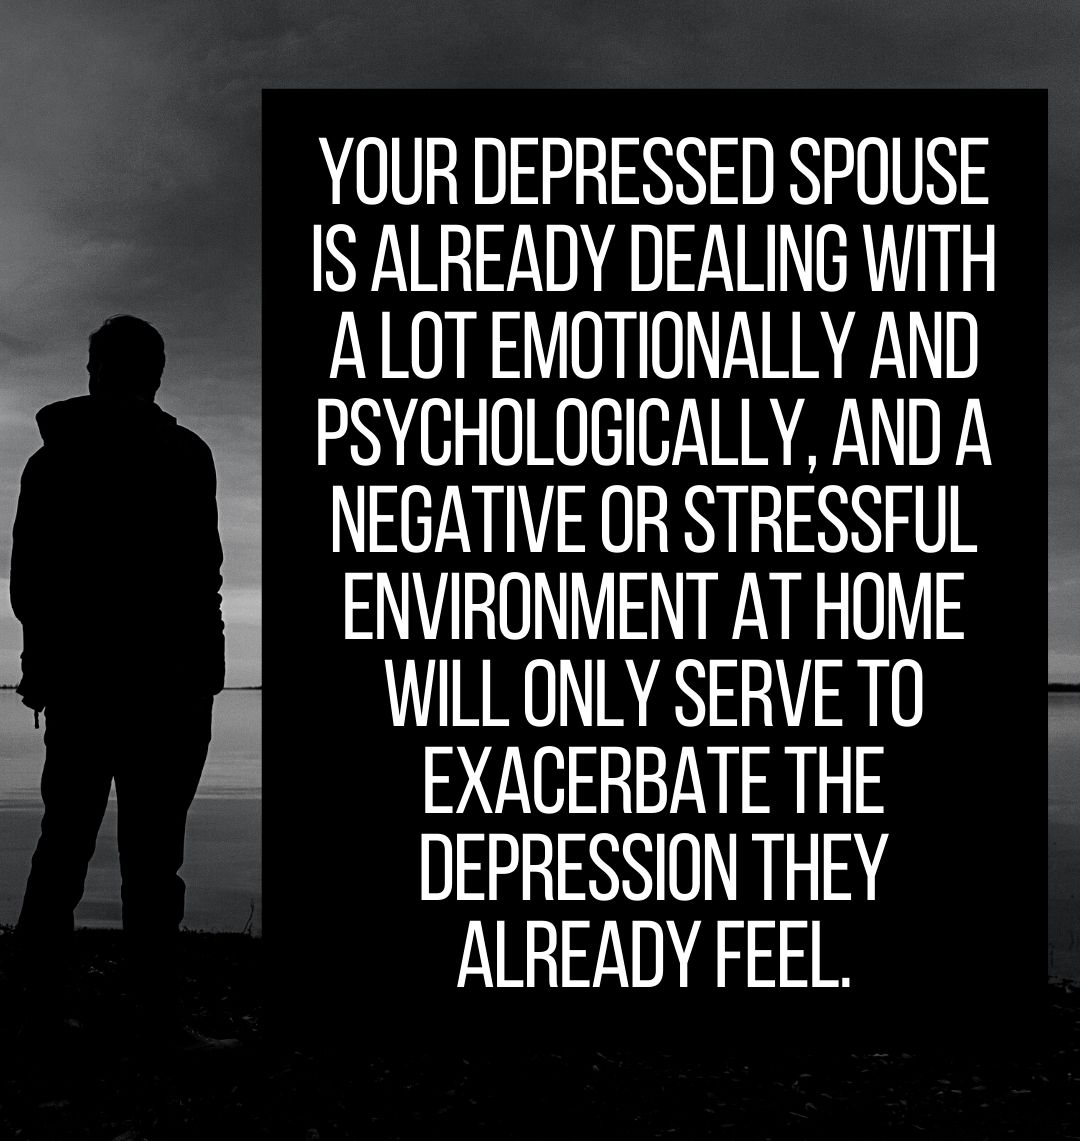 Your depressed spouse is already dealing with a lot emotionally and psychologically, and a negative or stressful environment at home will only serve to exacerbate the depression they already feel.